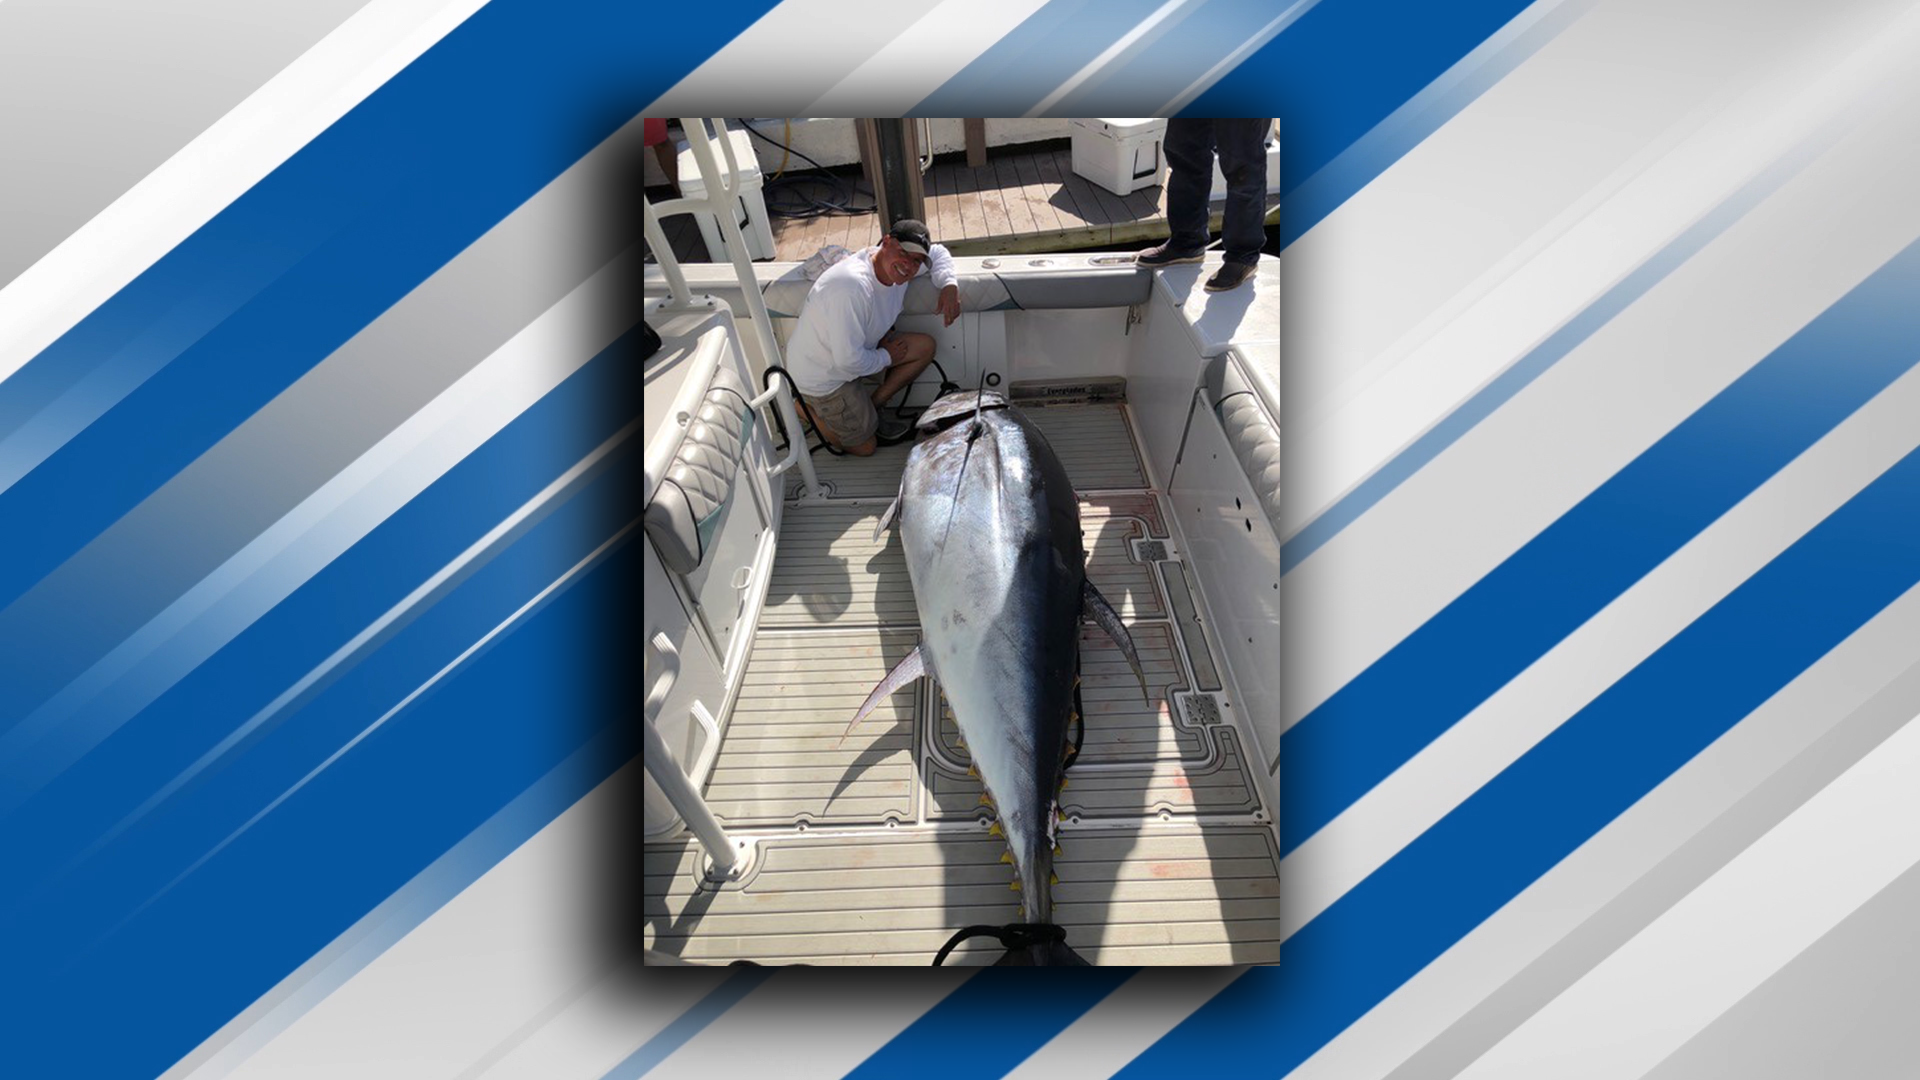 Captain Mike Busse of Reel Dusky Charters caught an 830 pound Atlantic bluefin tuna off the coast of Boca Raton. (Mike Busse){ }